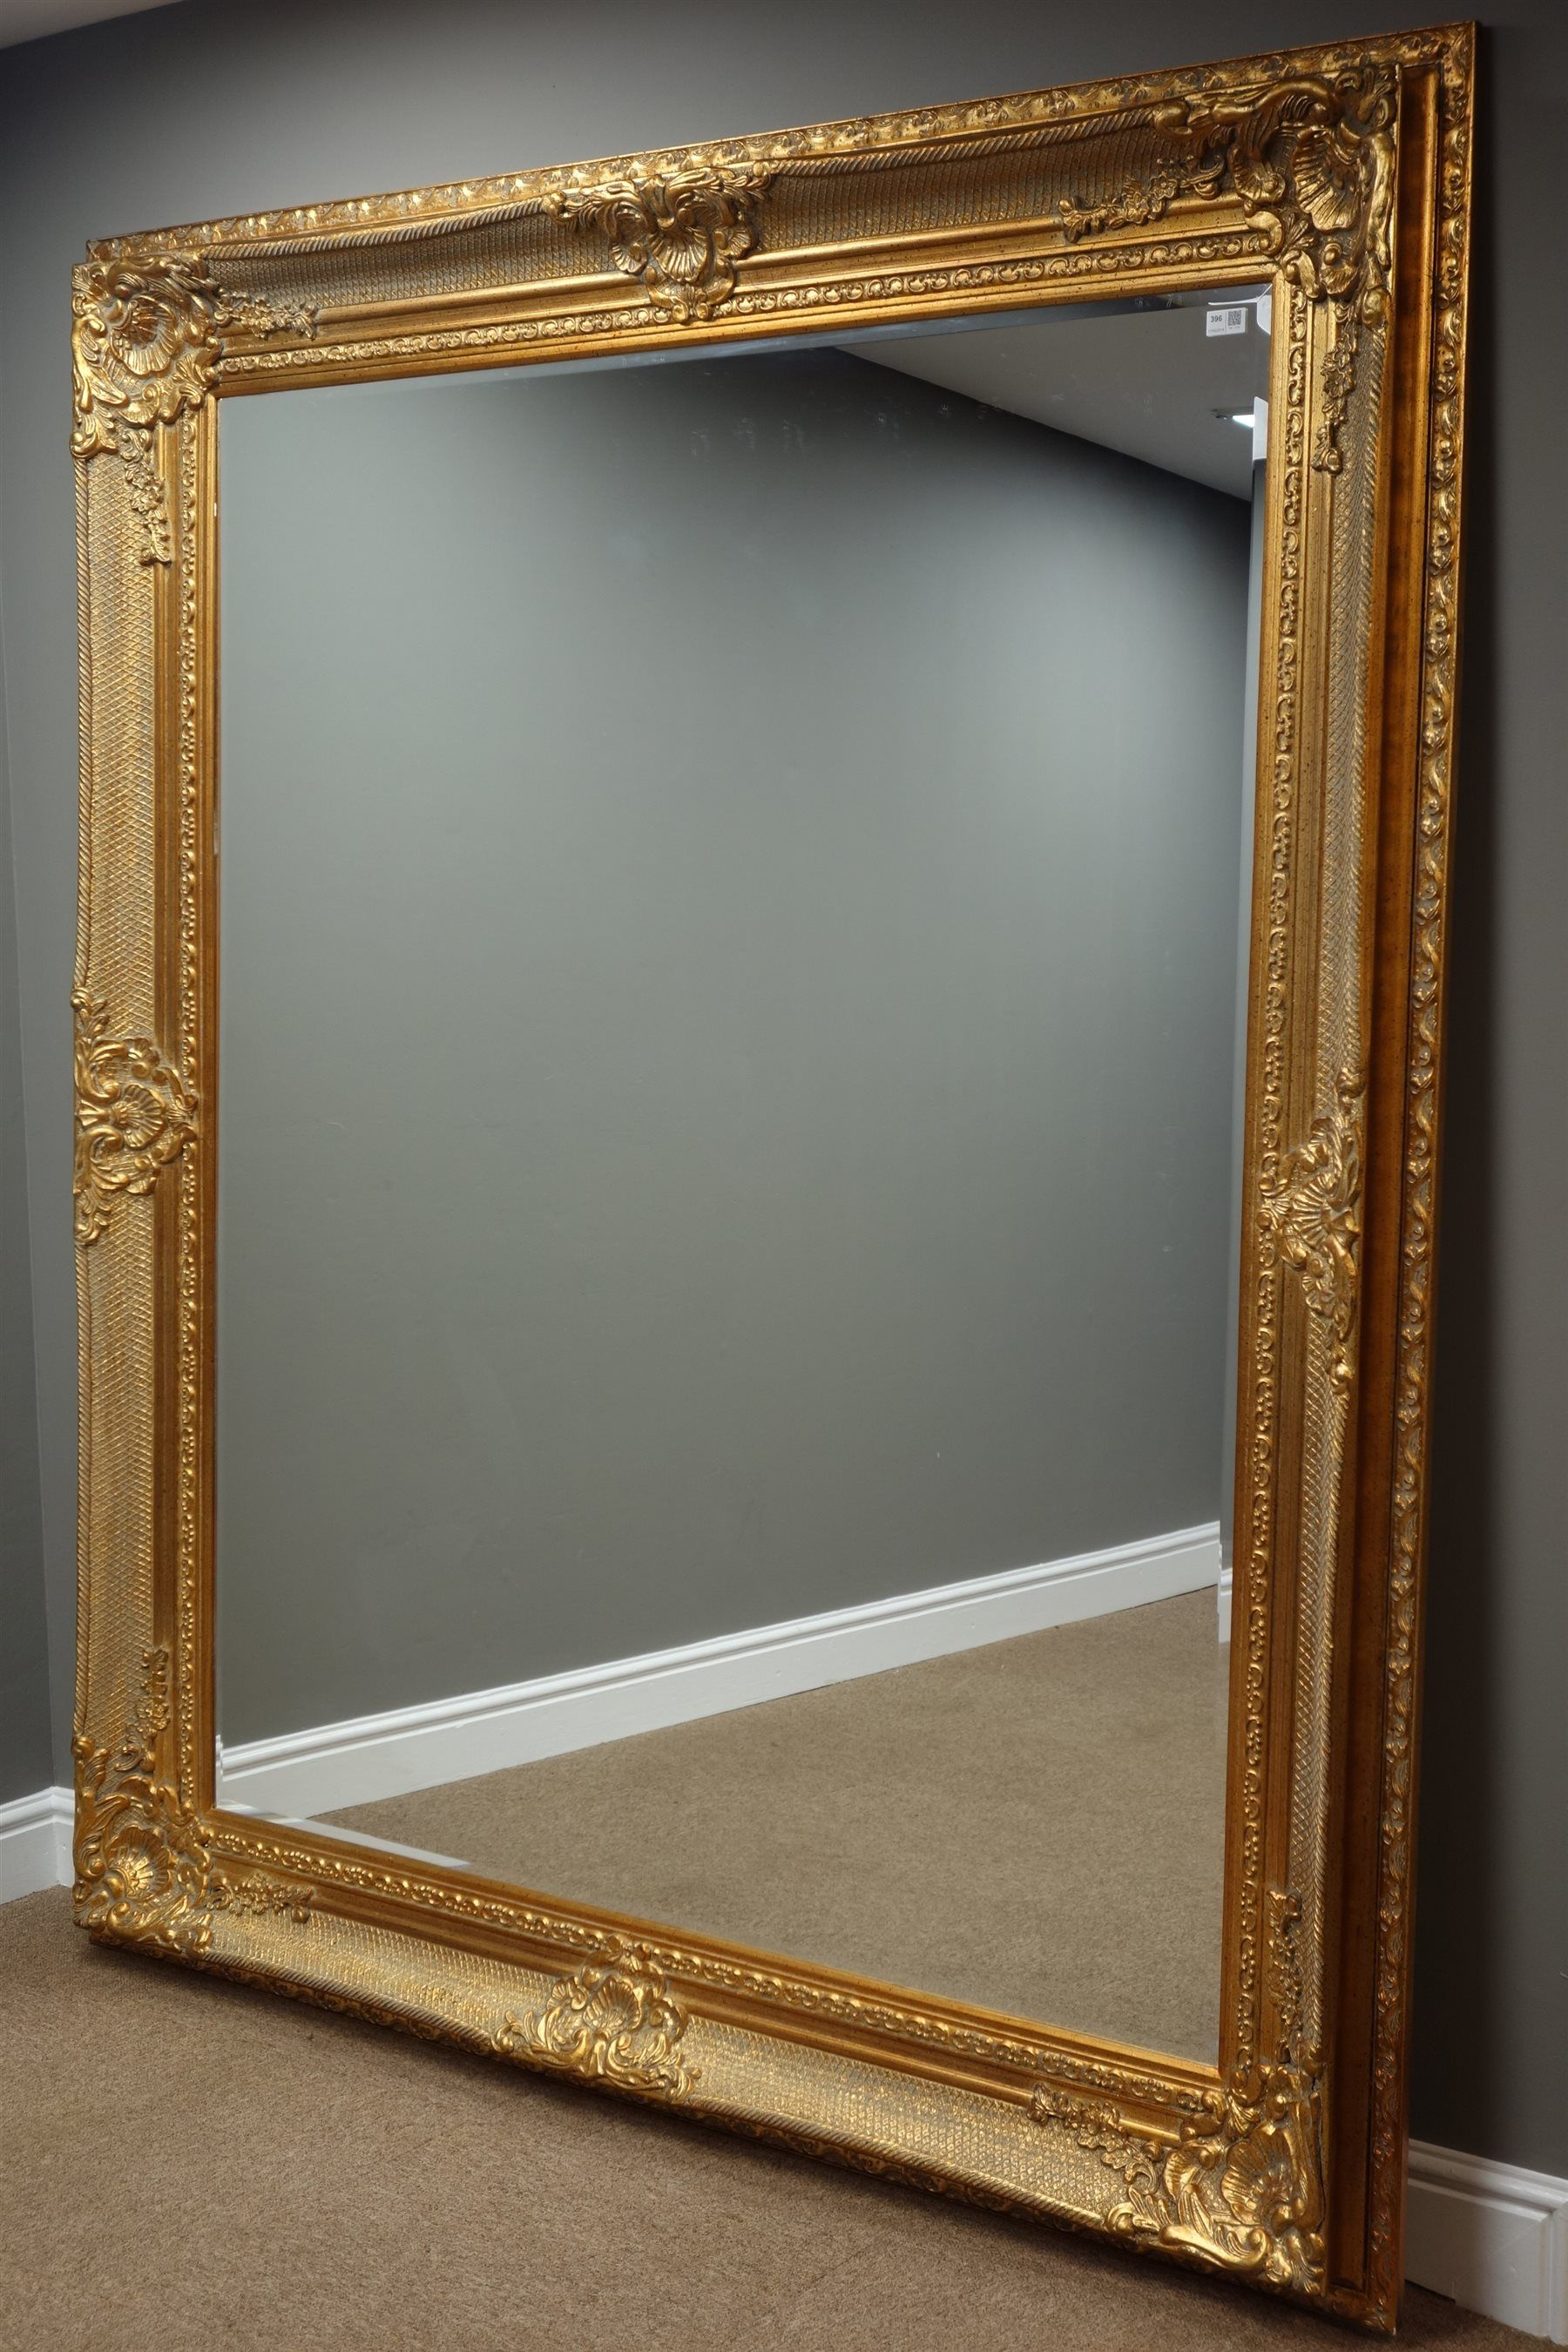 1a9b42653ce7a9 Large rectangular bevelled edge wall mirror in ornate swept gilt frame,  170cm x 200cm Duggleby auctioneers, open to offers. Could silver leaf?